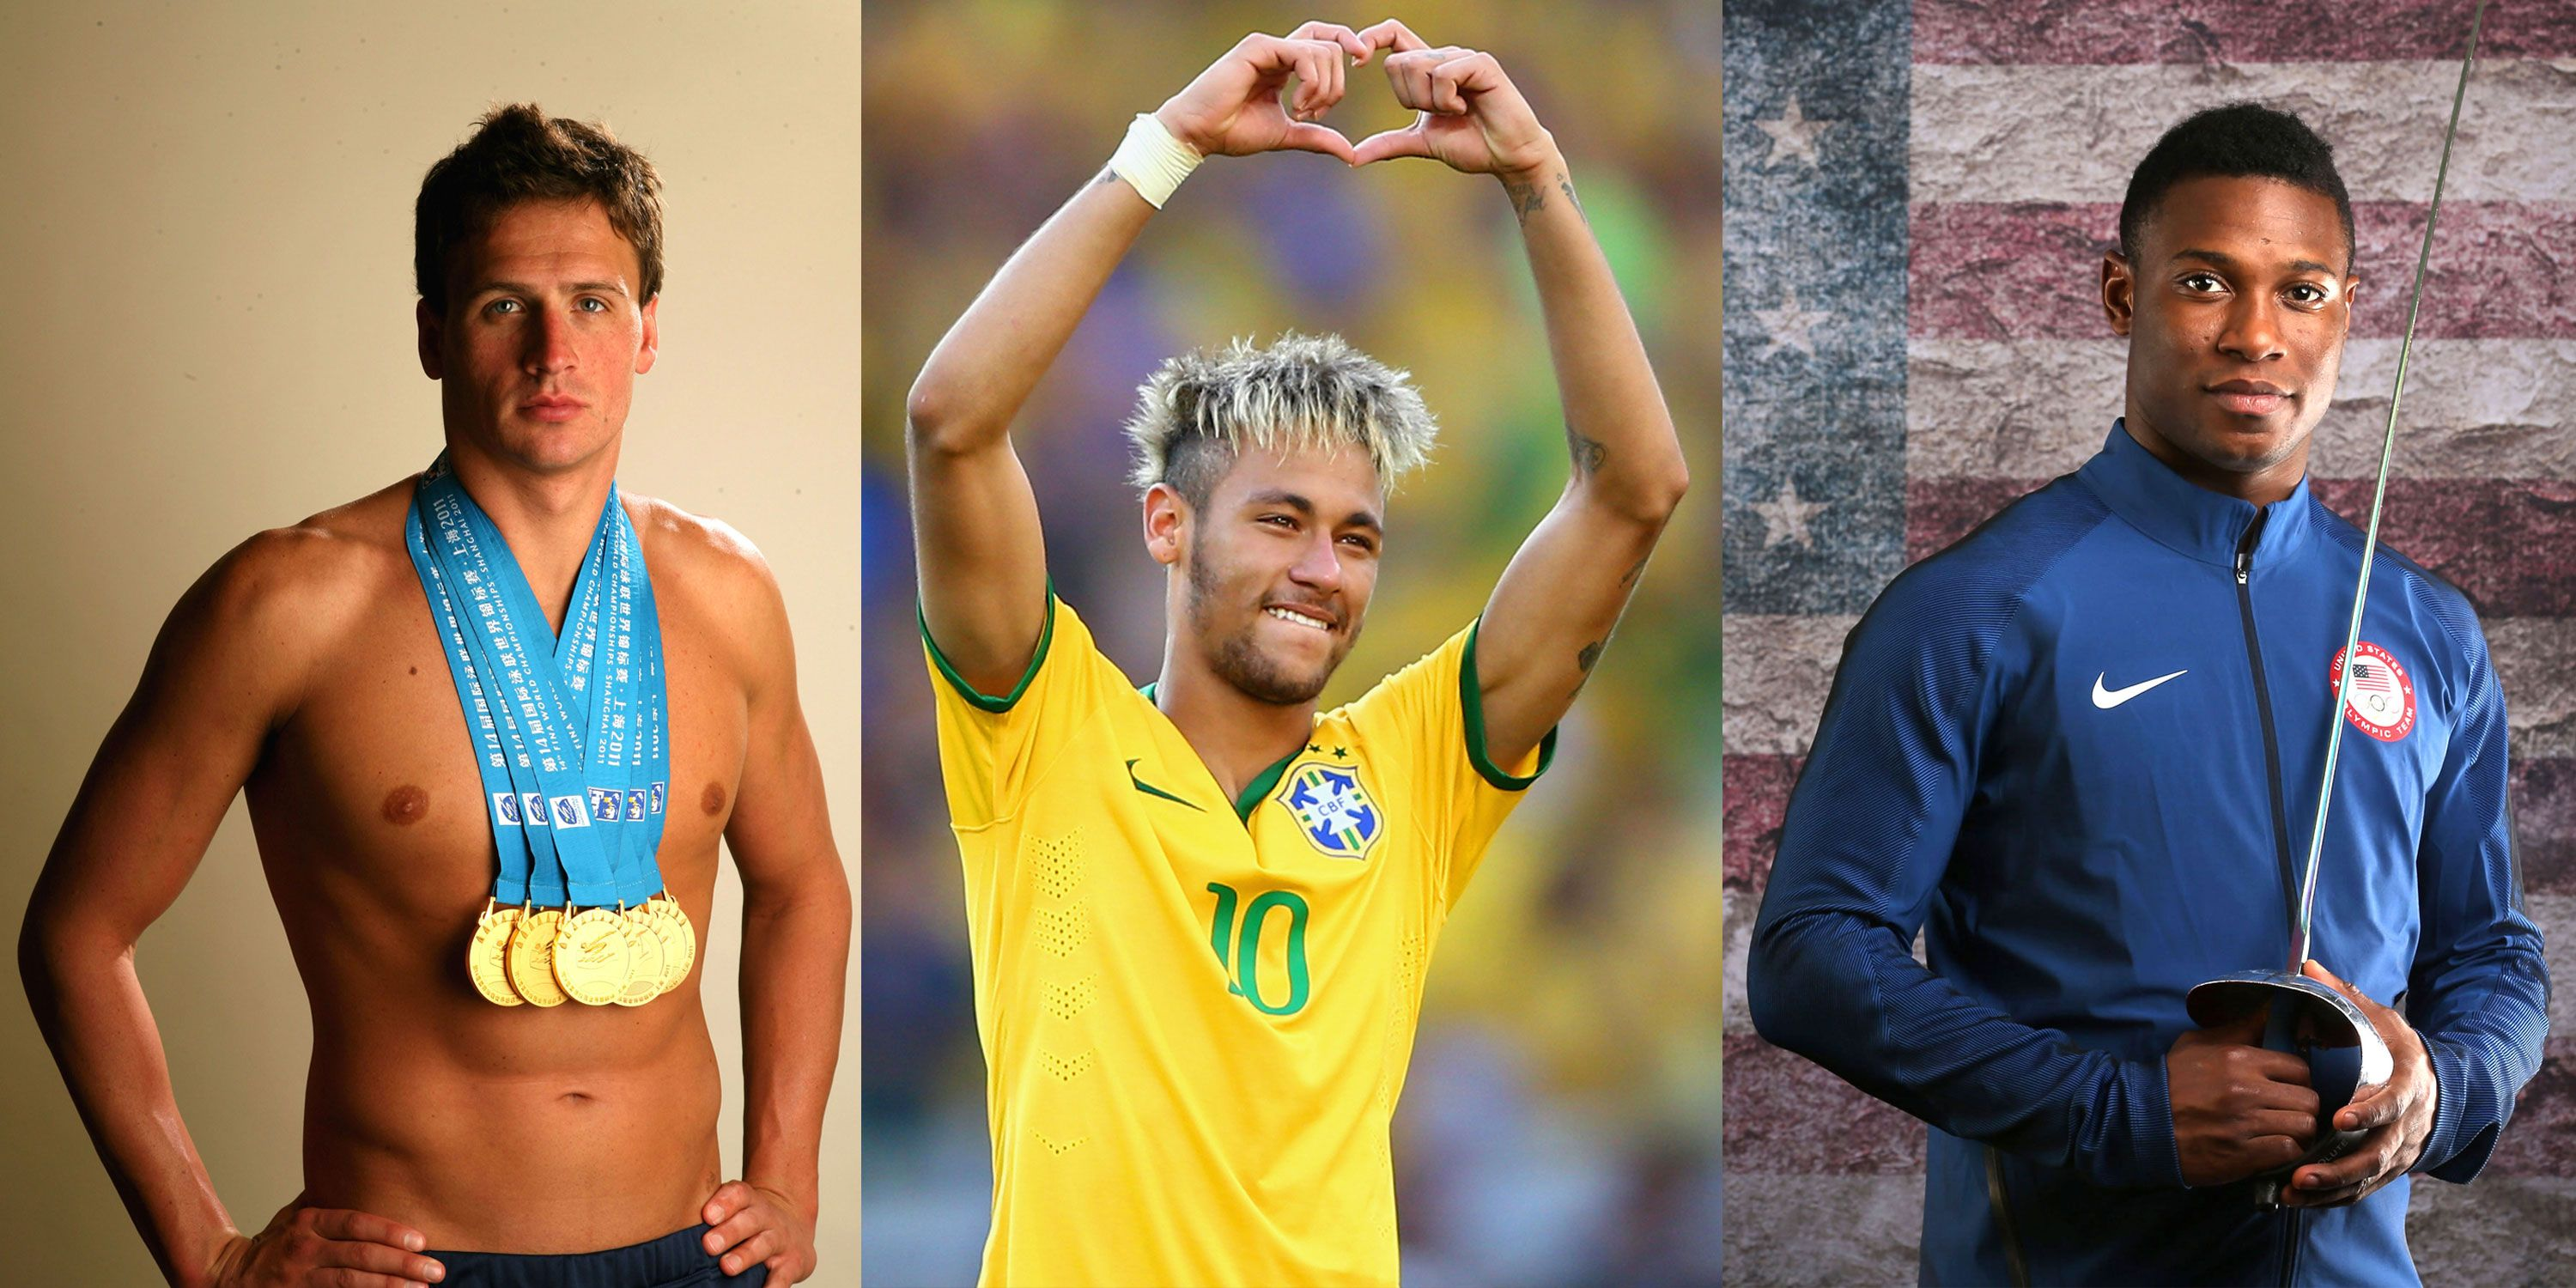 Behold: The 20 Hottest Male Olympians in Rio RightNow